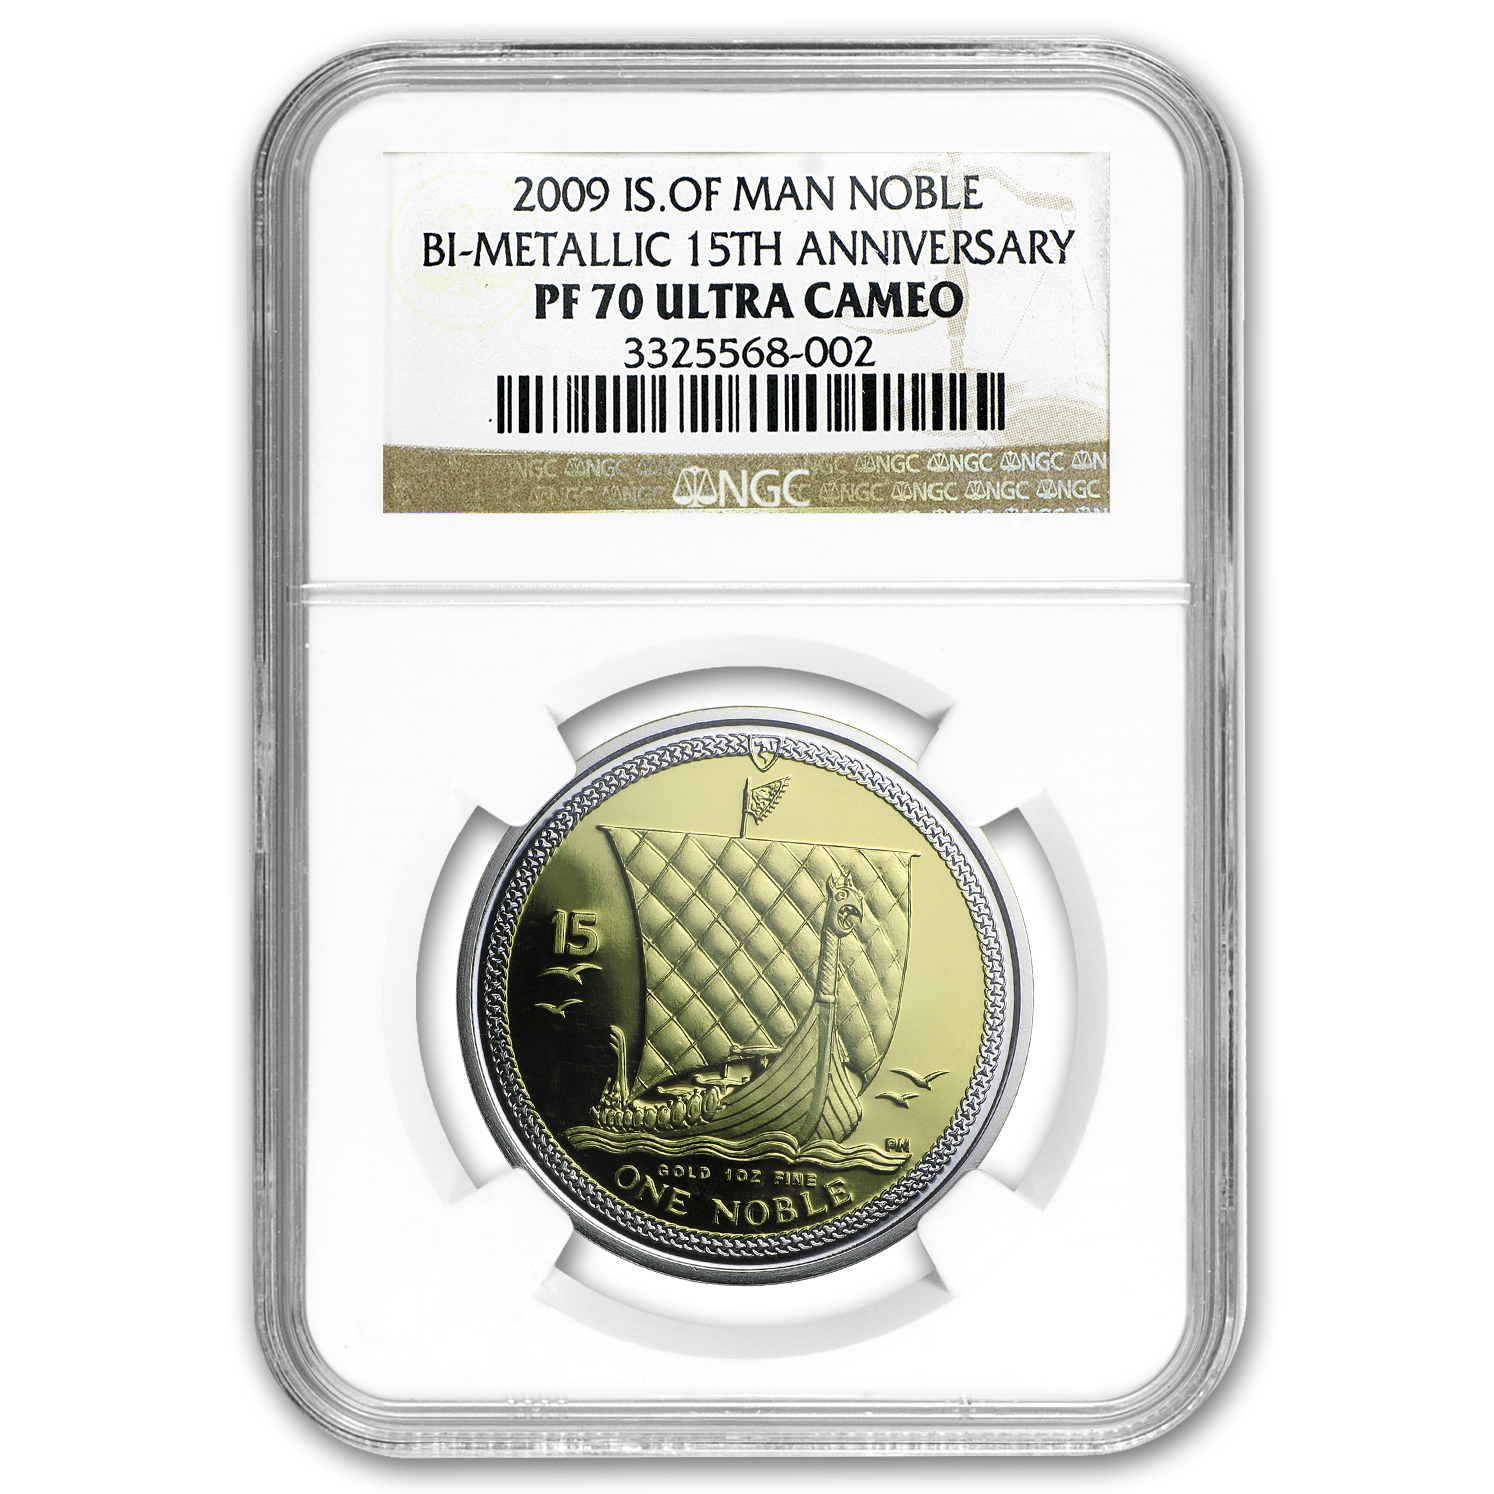 2009 Isle of Man Bi-Metallic Noble PF-70 NGC (15th Anniv)